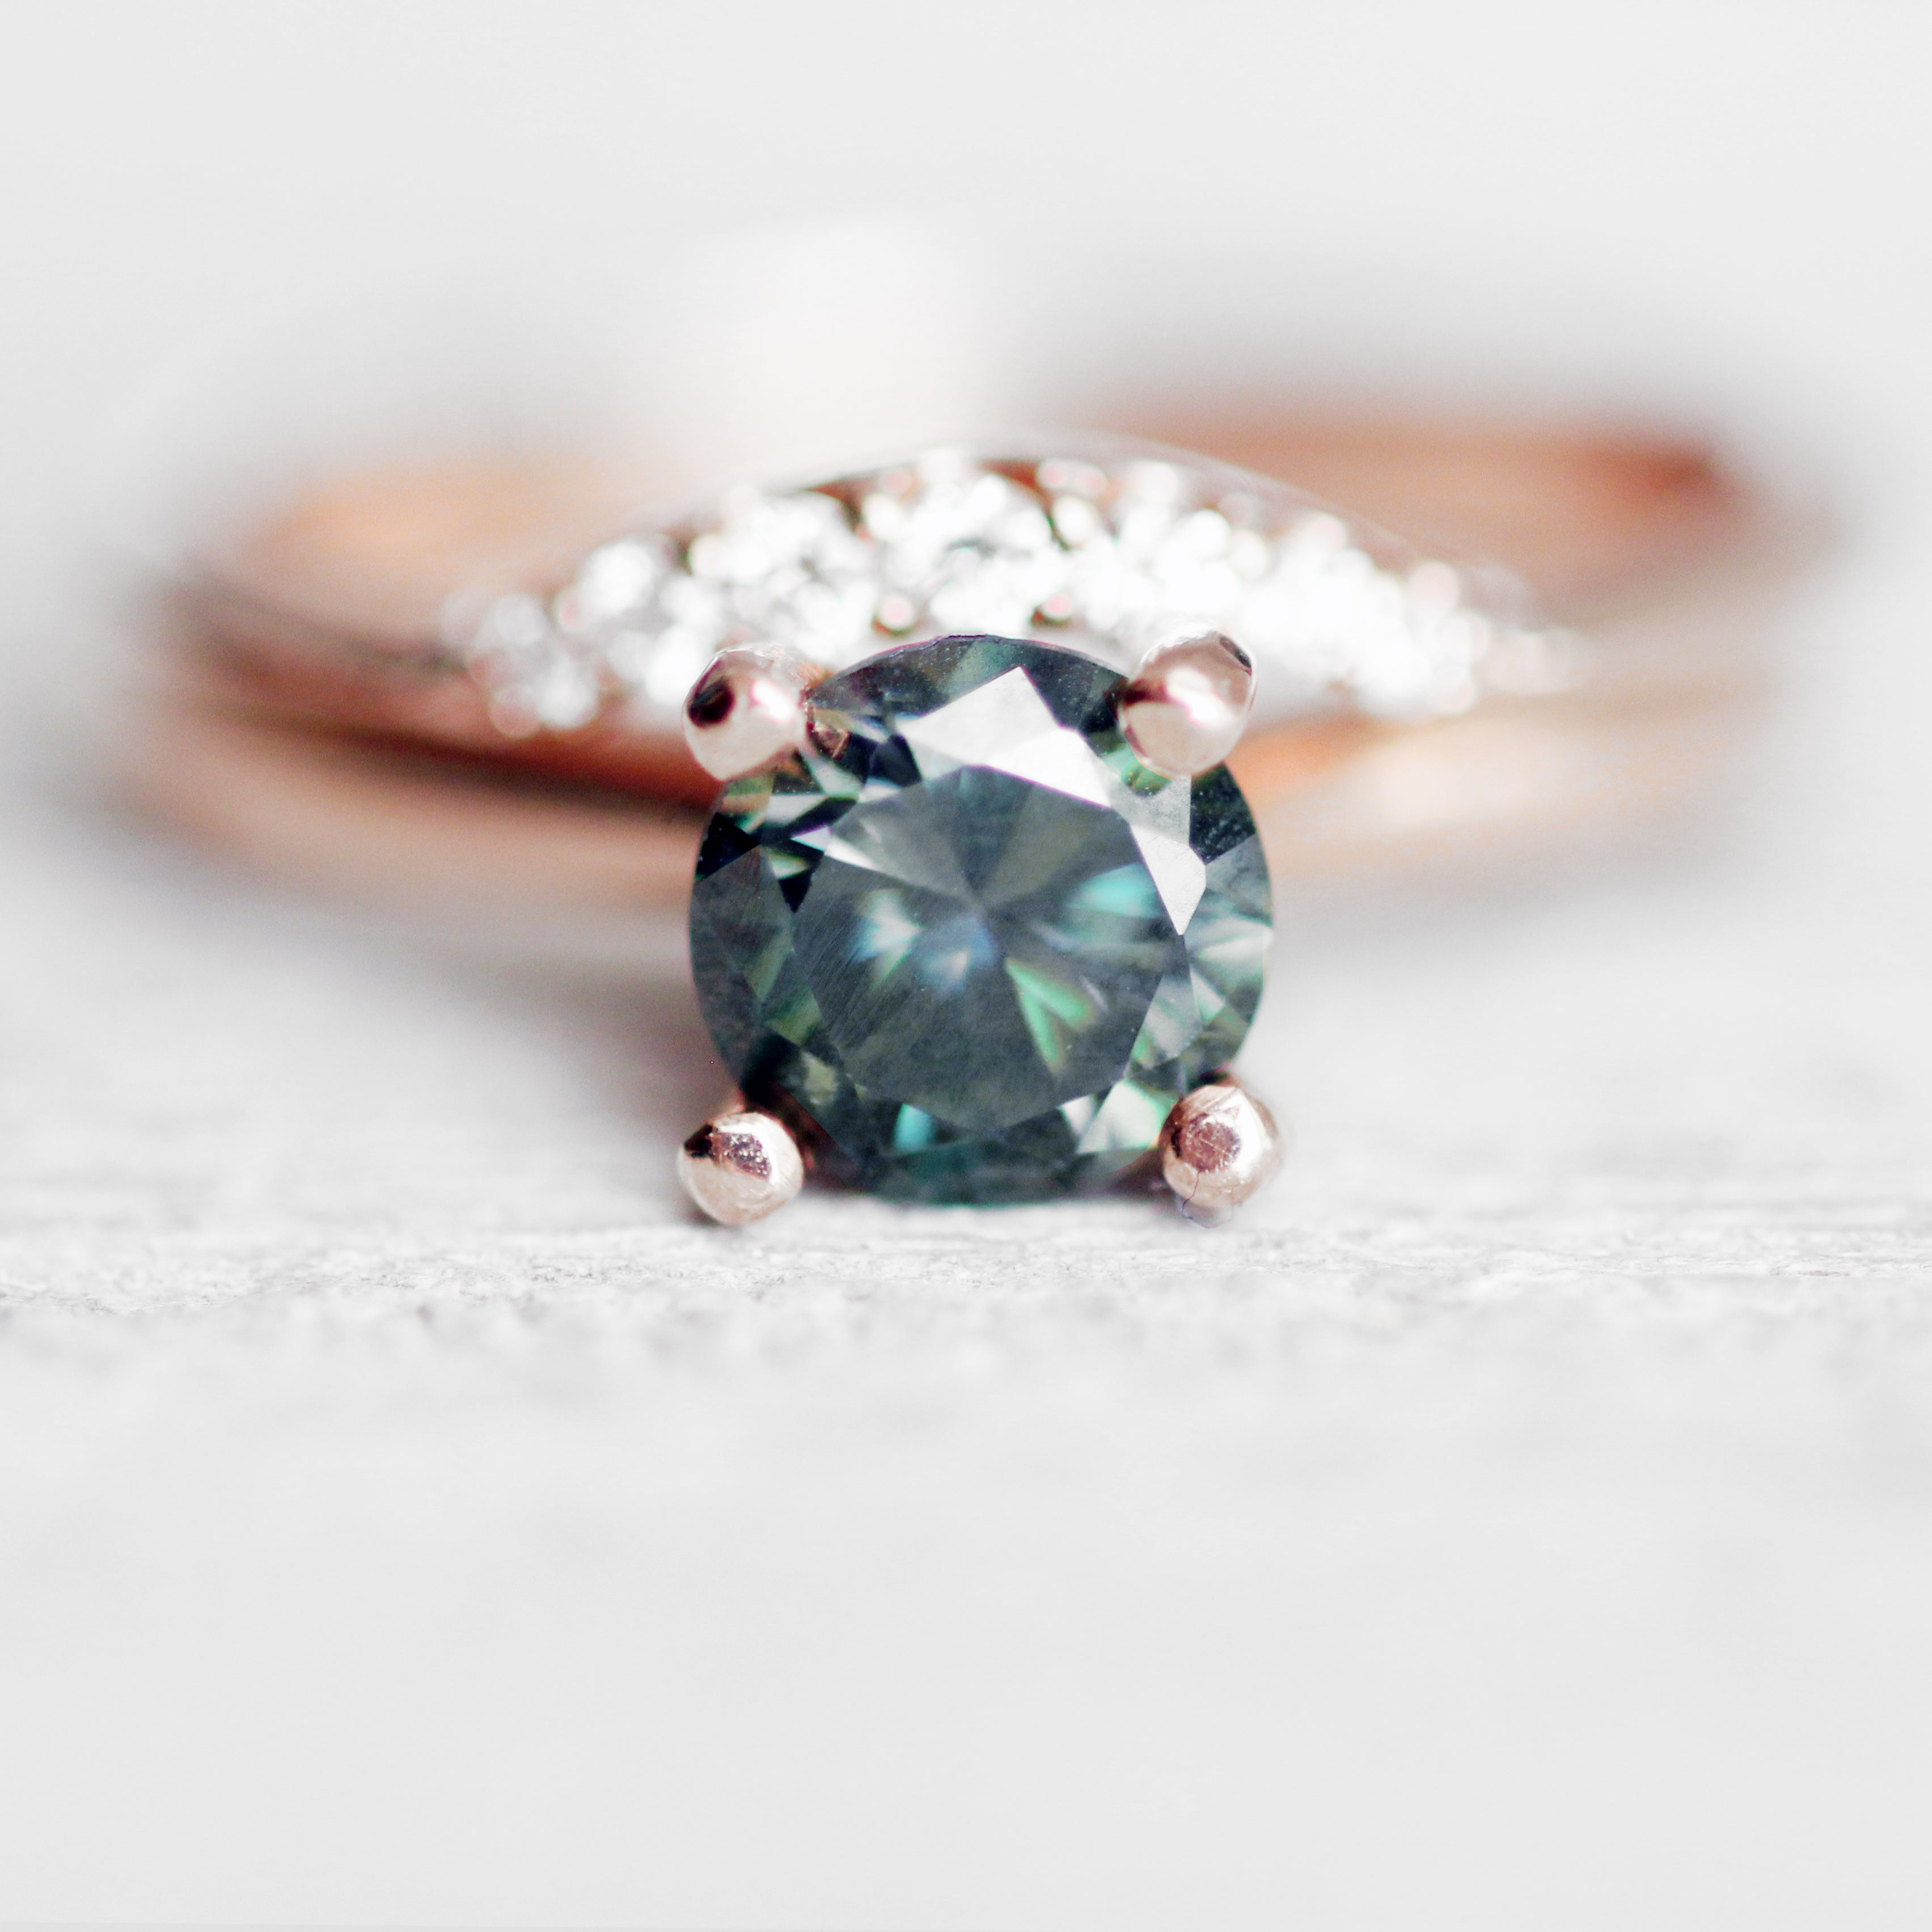 .70 carat -  Black & Teal Moissanite - Inventory Code MO70 - Salt & Pepper Celestial Diamond Engagement Rings and Wedding Bands  by Midwinter Co.